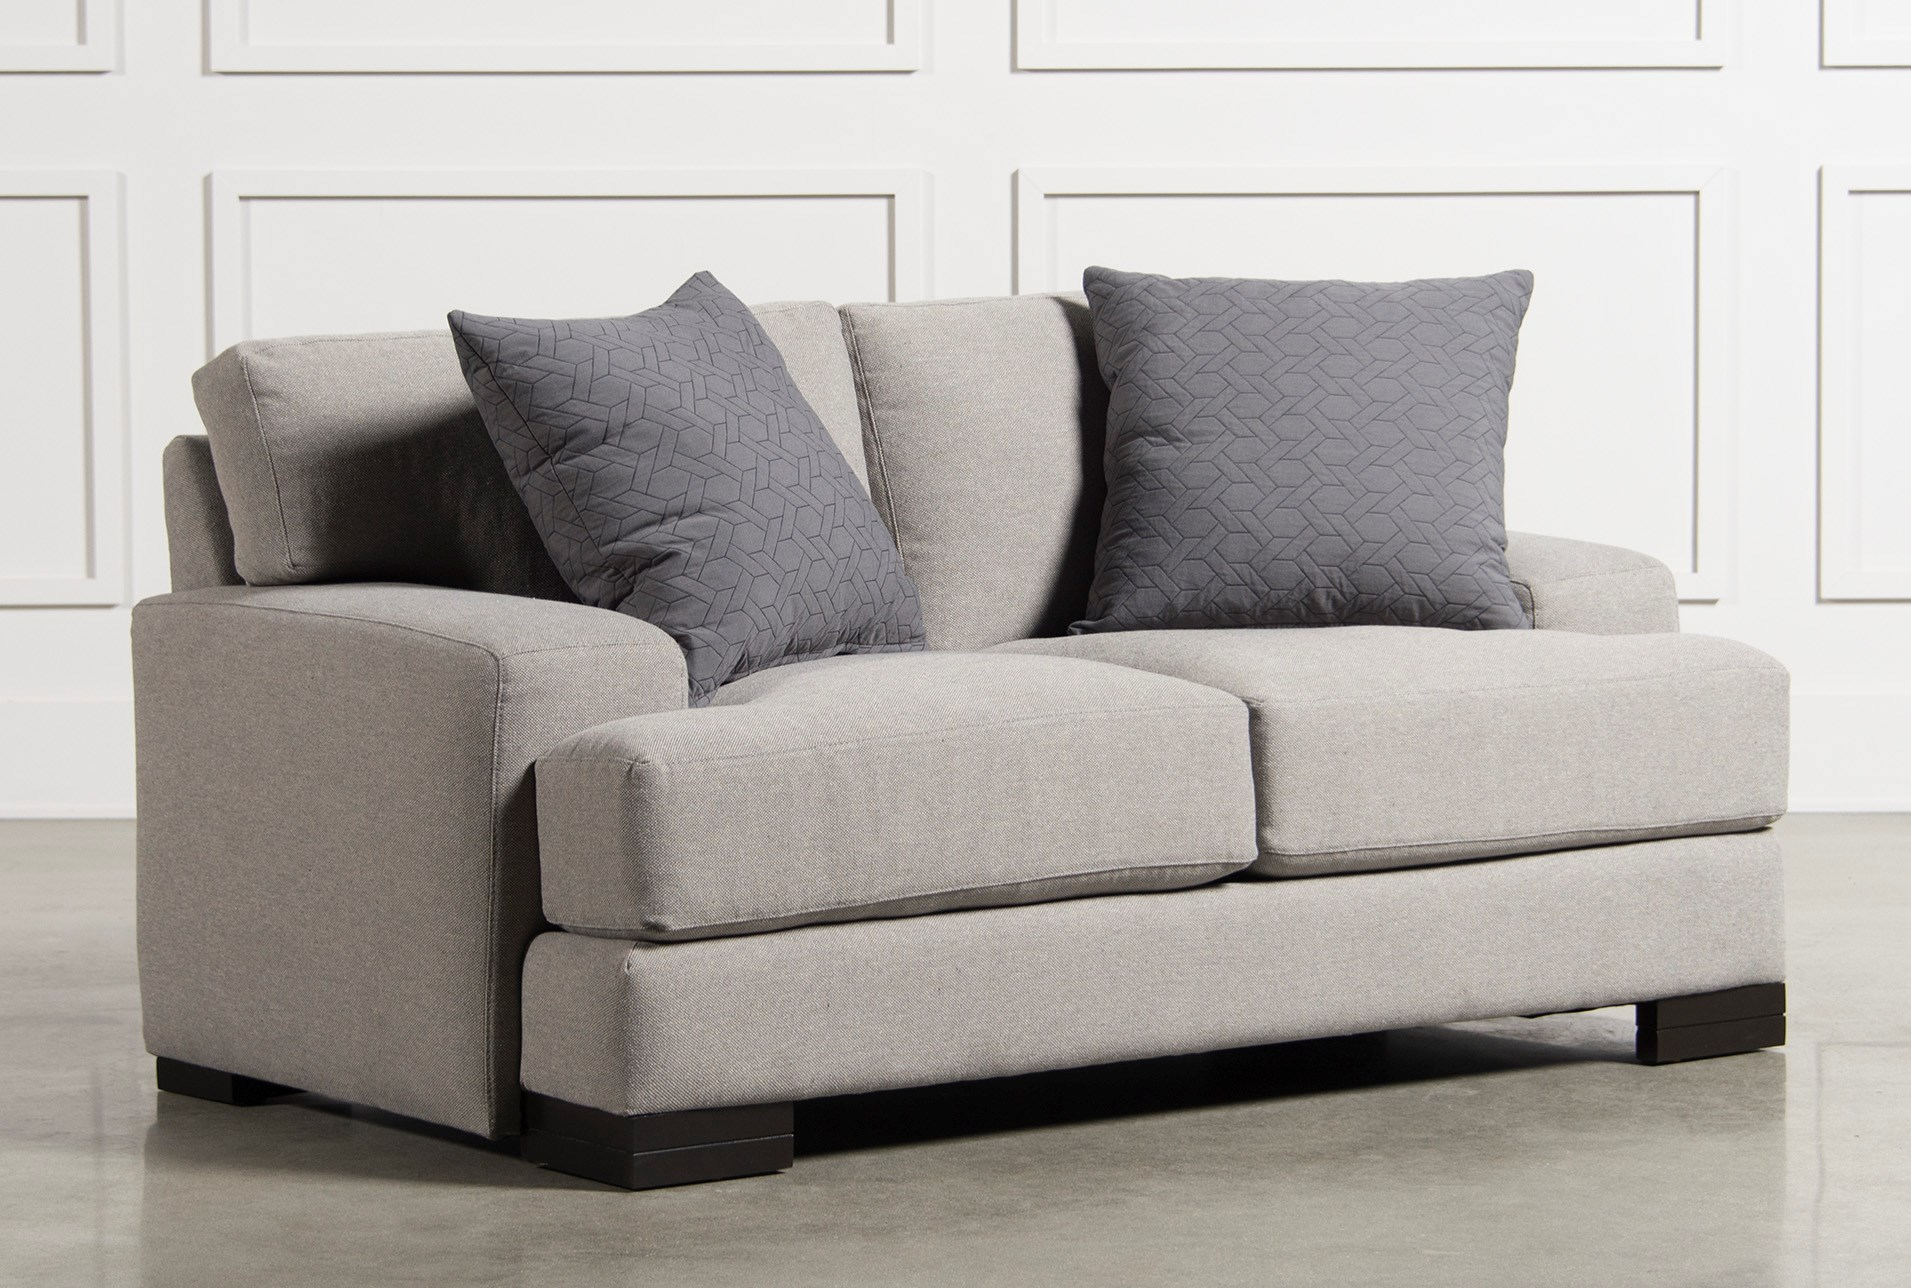 Aidan loveseat qty 1 has been successfully added to your cart